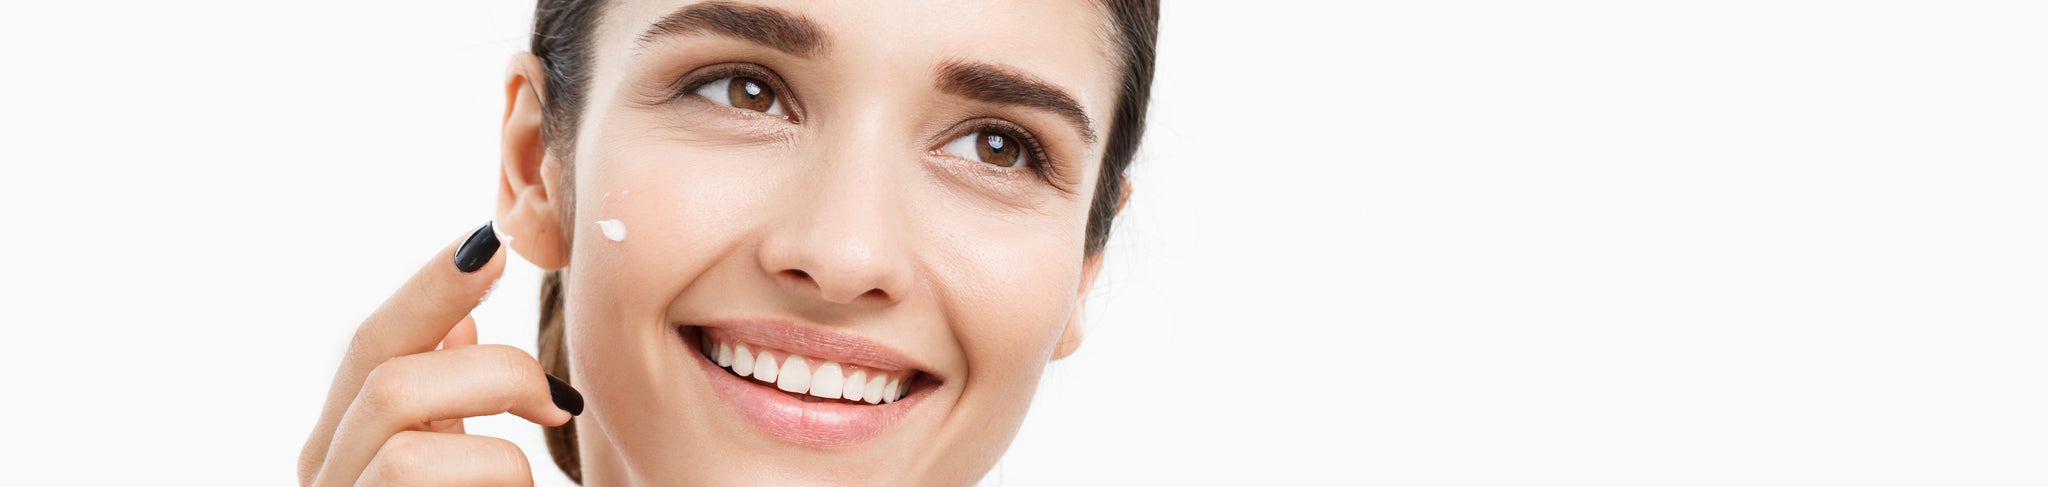 When to Start Your Age-Defying Skincare Routine